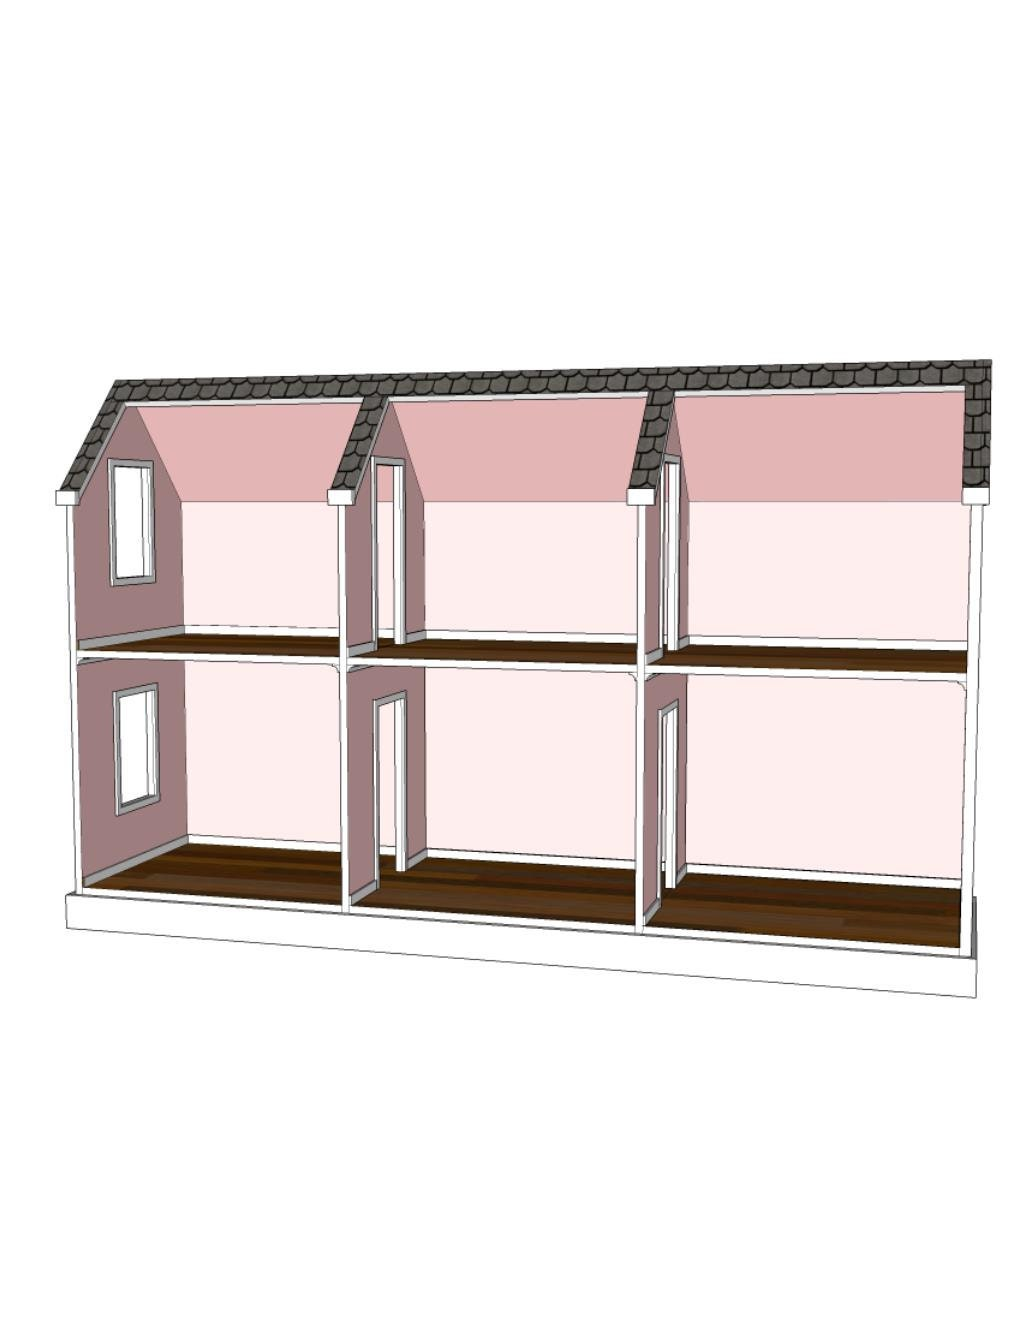 Doll House Plans For American Girl Or 18 Inch Dolls 6 Room Etsy